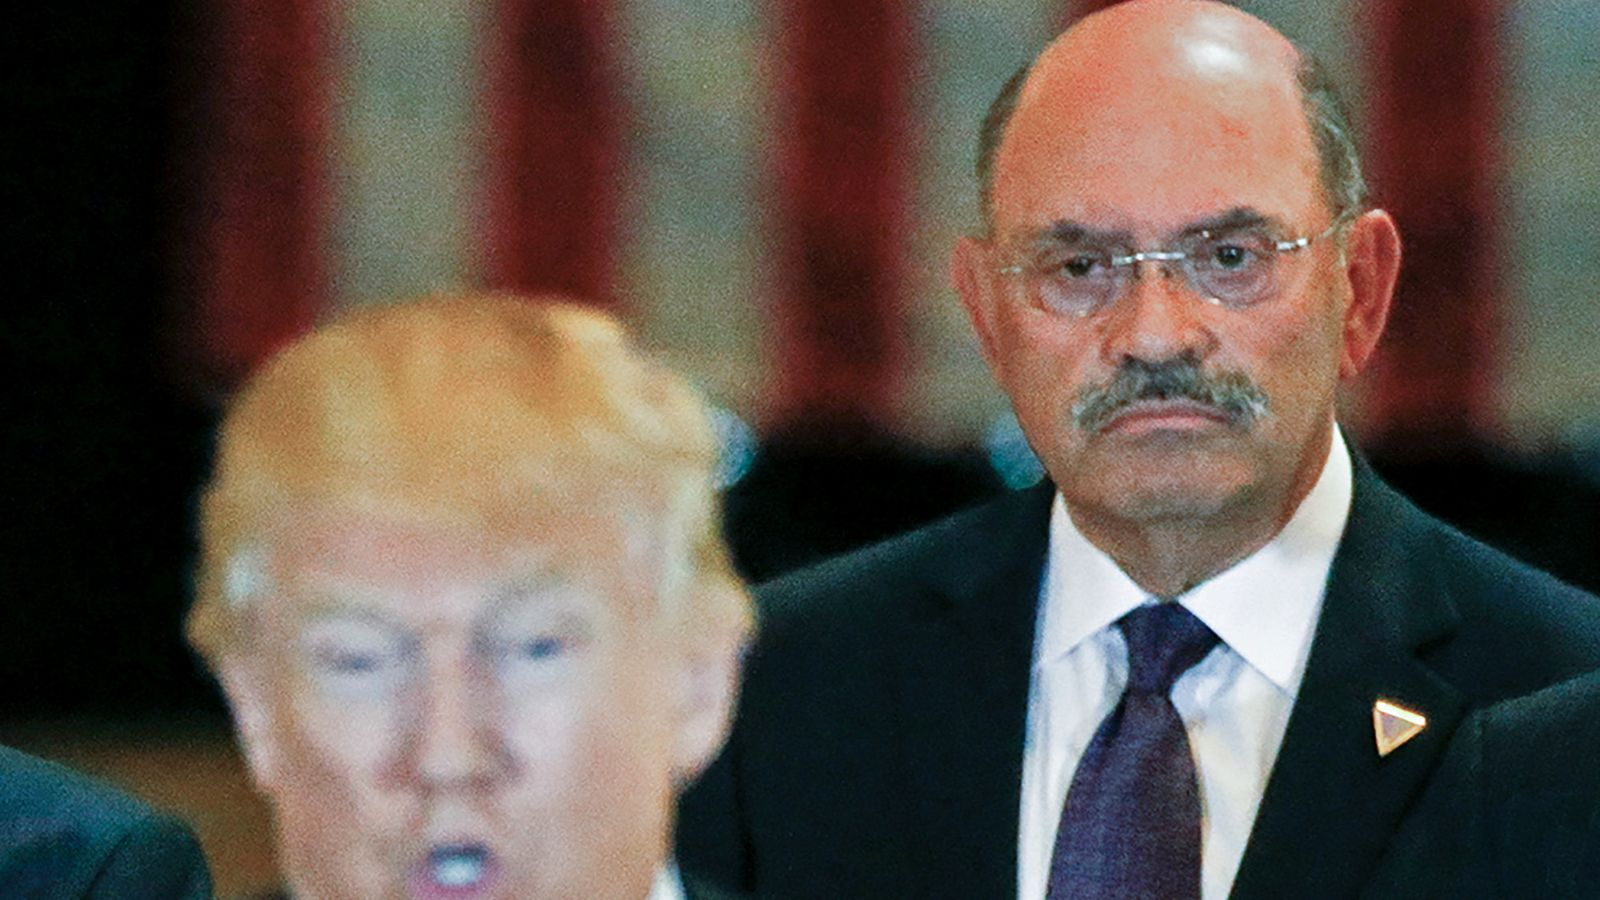 Trump Organization executive Allen Weisselberg surrenders to authorities ahead of expected charges